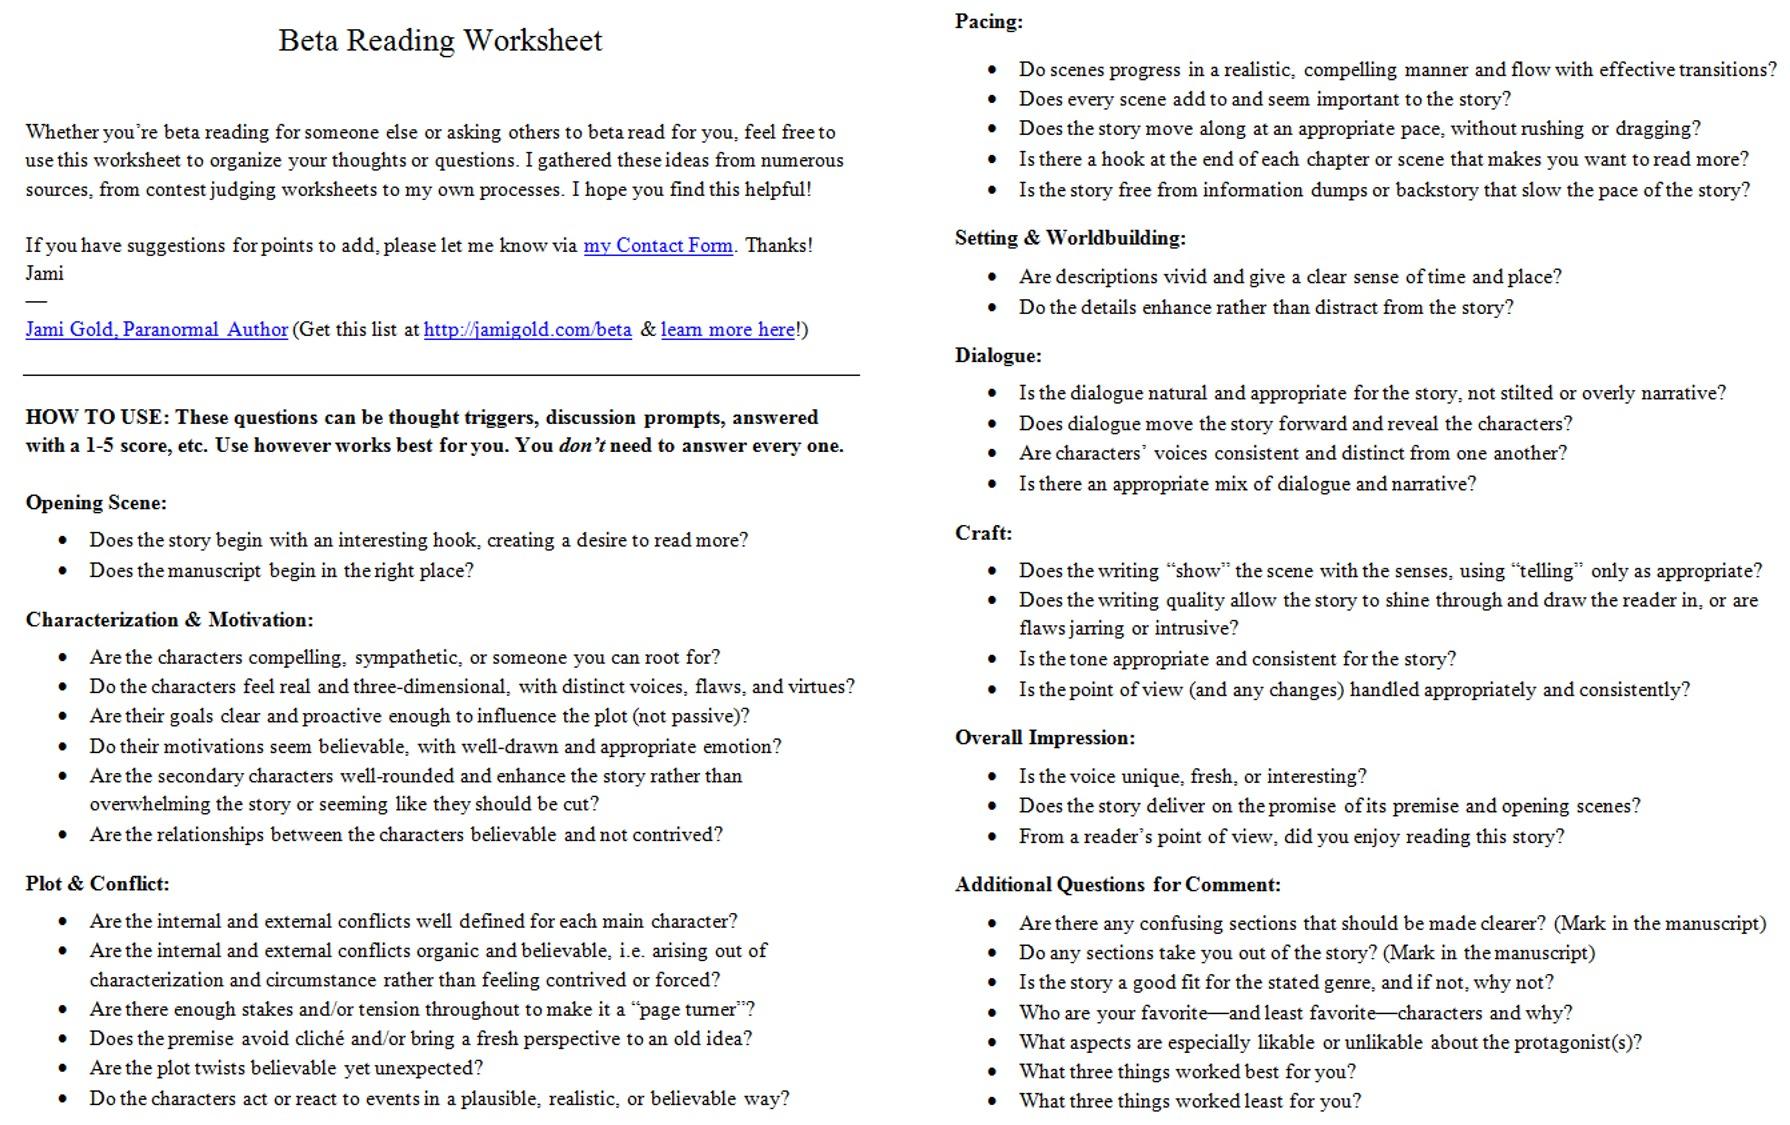 Weirdmailus  Mesmerizing Worksheets For Writers  Jami Gold Paranormal Author With Luxury Screen Shot Of The Twopage Beta Reading Worksheet With Breathtaking Vocabulary Builder Worksheets Also Patriot Day Worksheets In Addition Chemical Energy Worksheet And Worksheets For Kindergarten Math As Well As Printable Coloring Worksheets For Kindergarten Additionally Super Teachers Worksheets Com From Jamigoldcom With Weirdmailus  Luxury Worksheets For Writers  Jami Gold Paranormal Author With Breathtaking Screen Shot Of The Twopage Beta Reading Worksheet And Mesmerizing Vocabulary Builder Worksheets Also Patriot Day Worksheets In Addition Chemical Energy Worksheet From Jamigoldcom